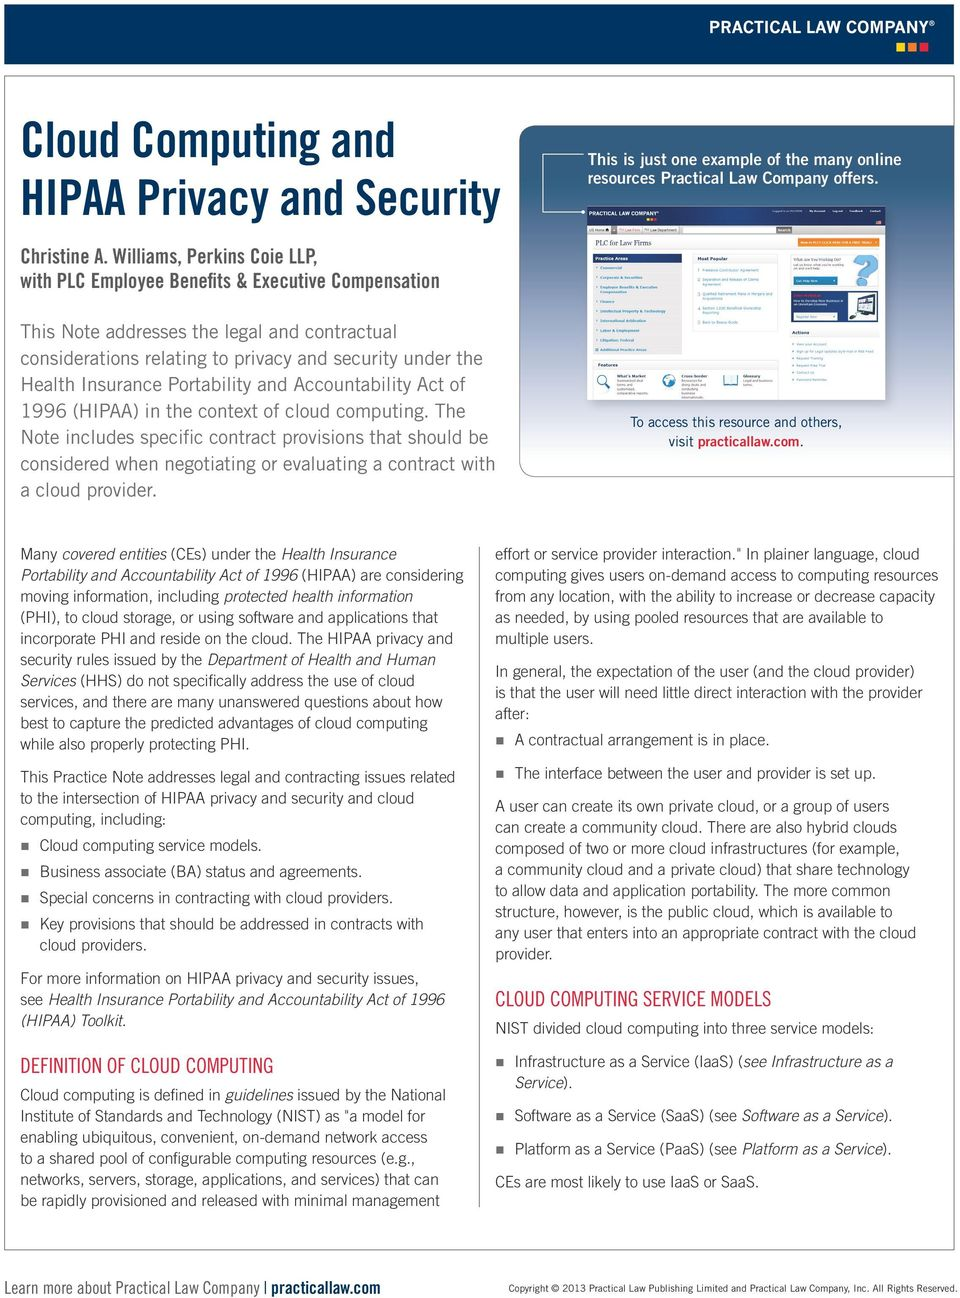 Insurance Portability and Accountability Act of 1996 (HIPAA) in the context of cloud computing.